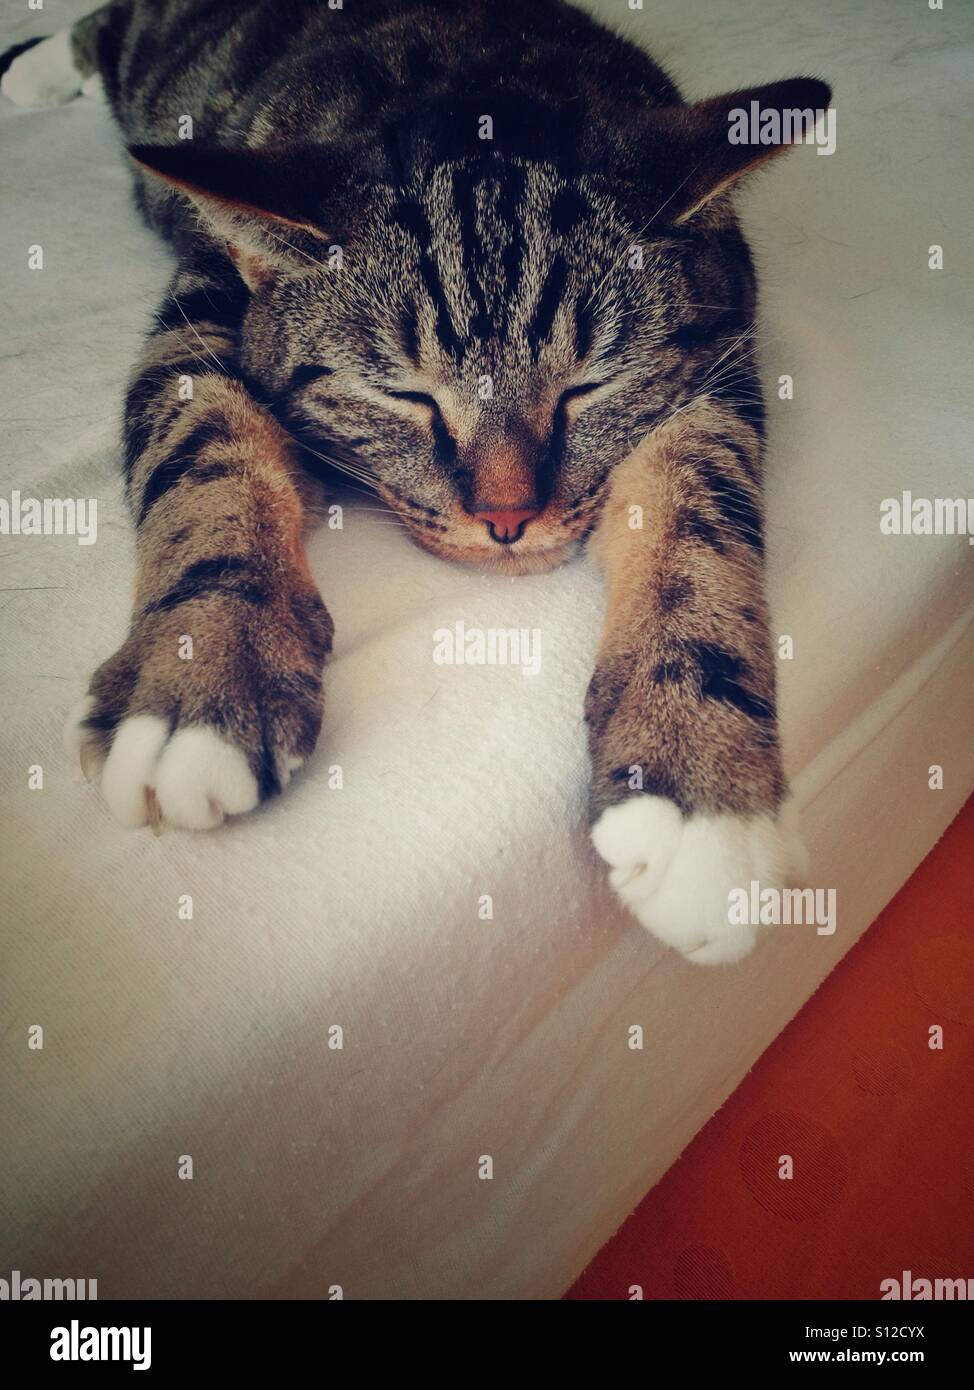 Tabby cat dozing with legs stretched out. - Stock Image